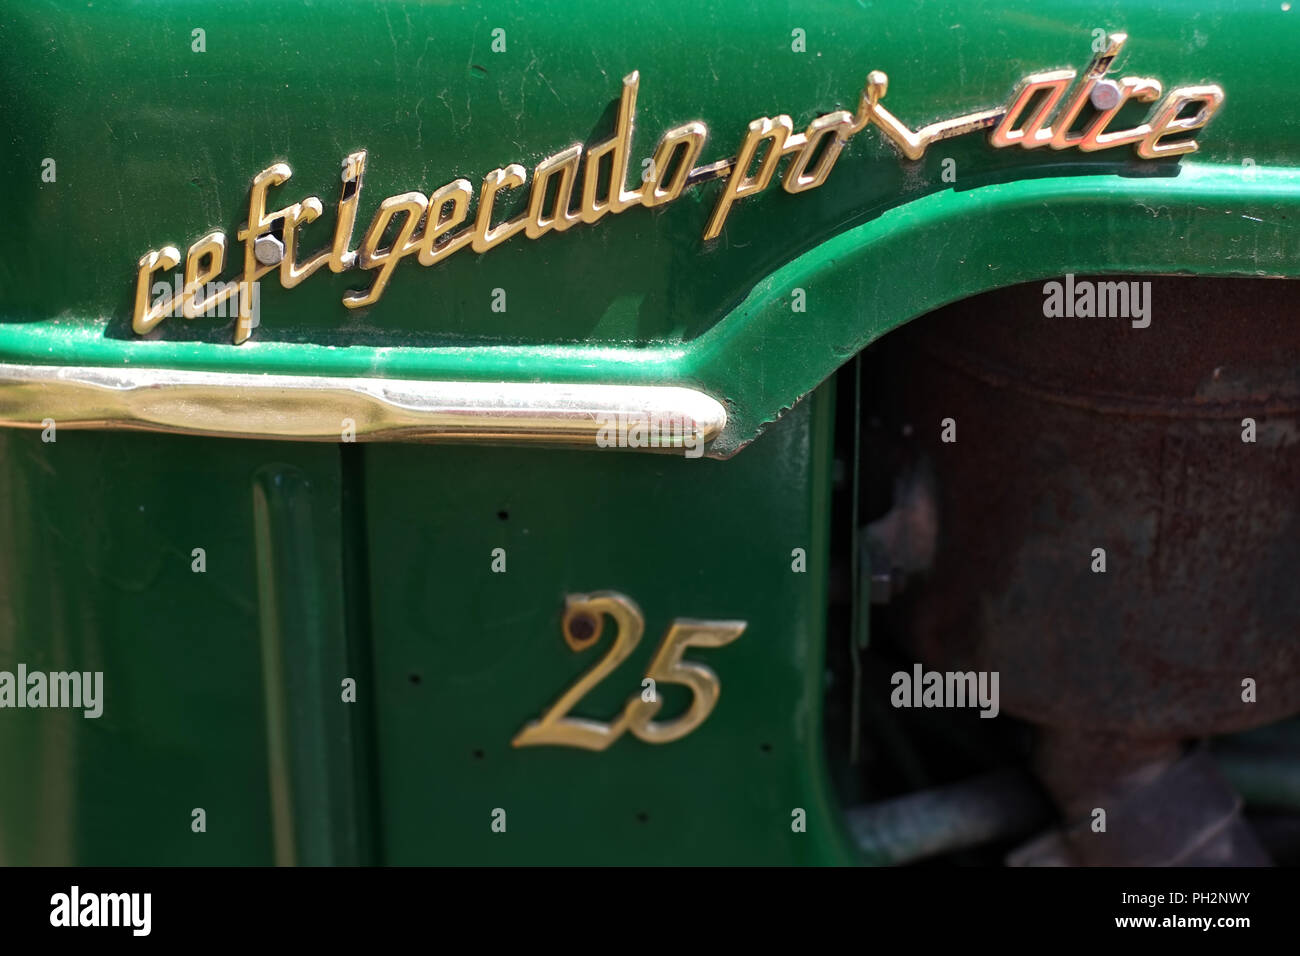 Detail of an air cooled Spanish green tractor - Stock Image